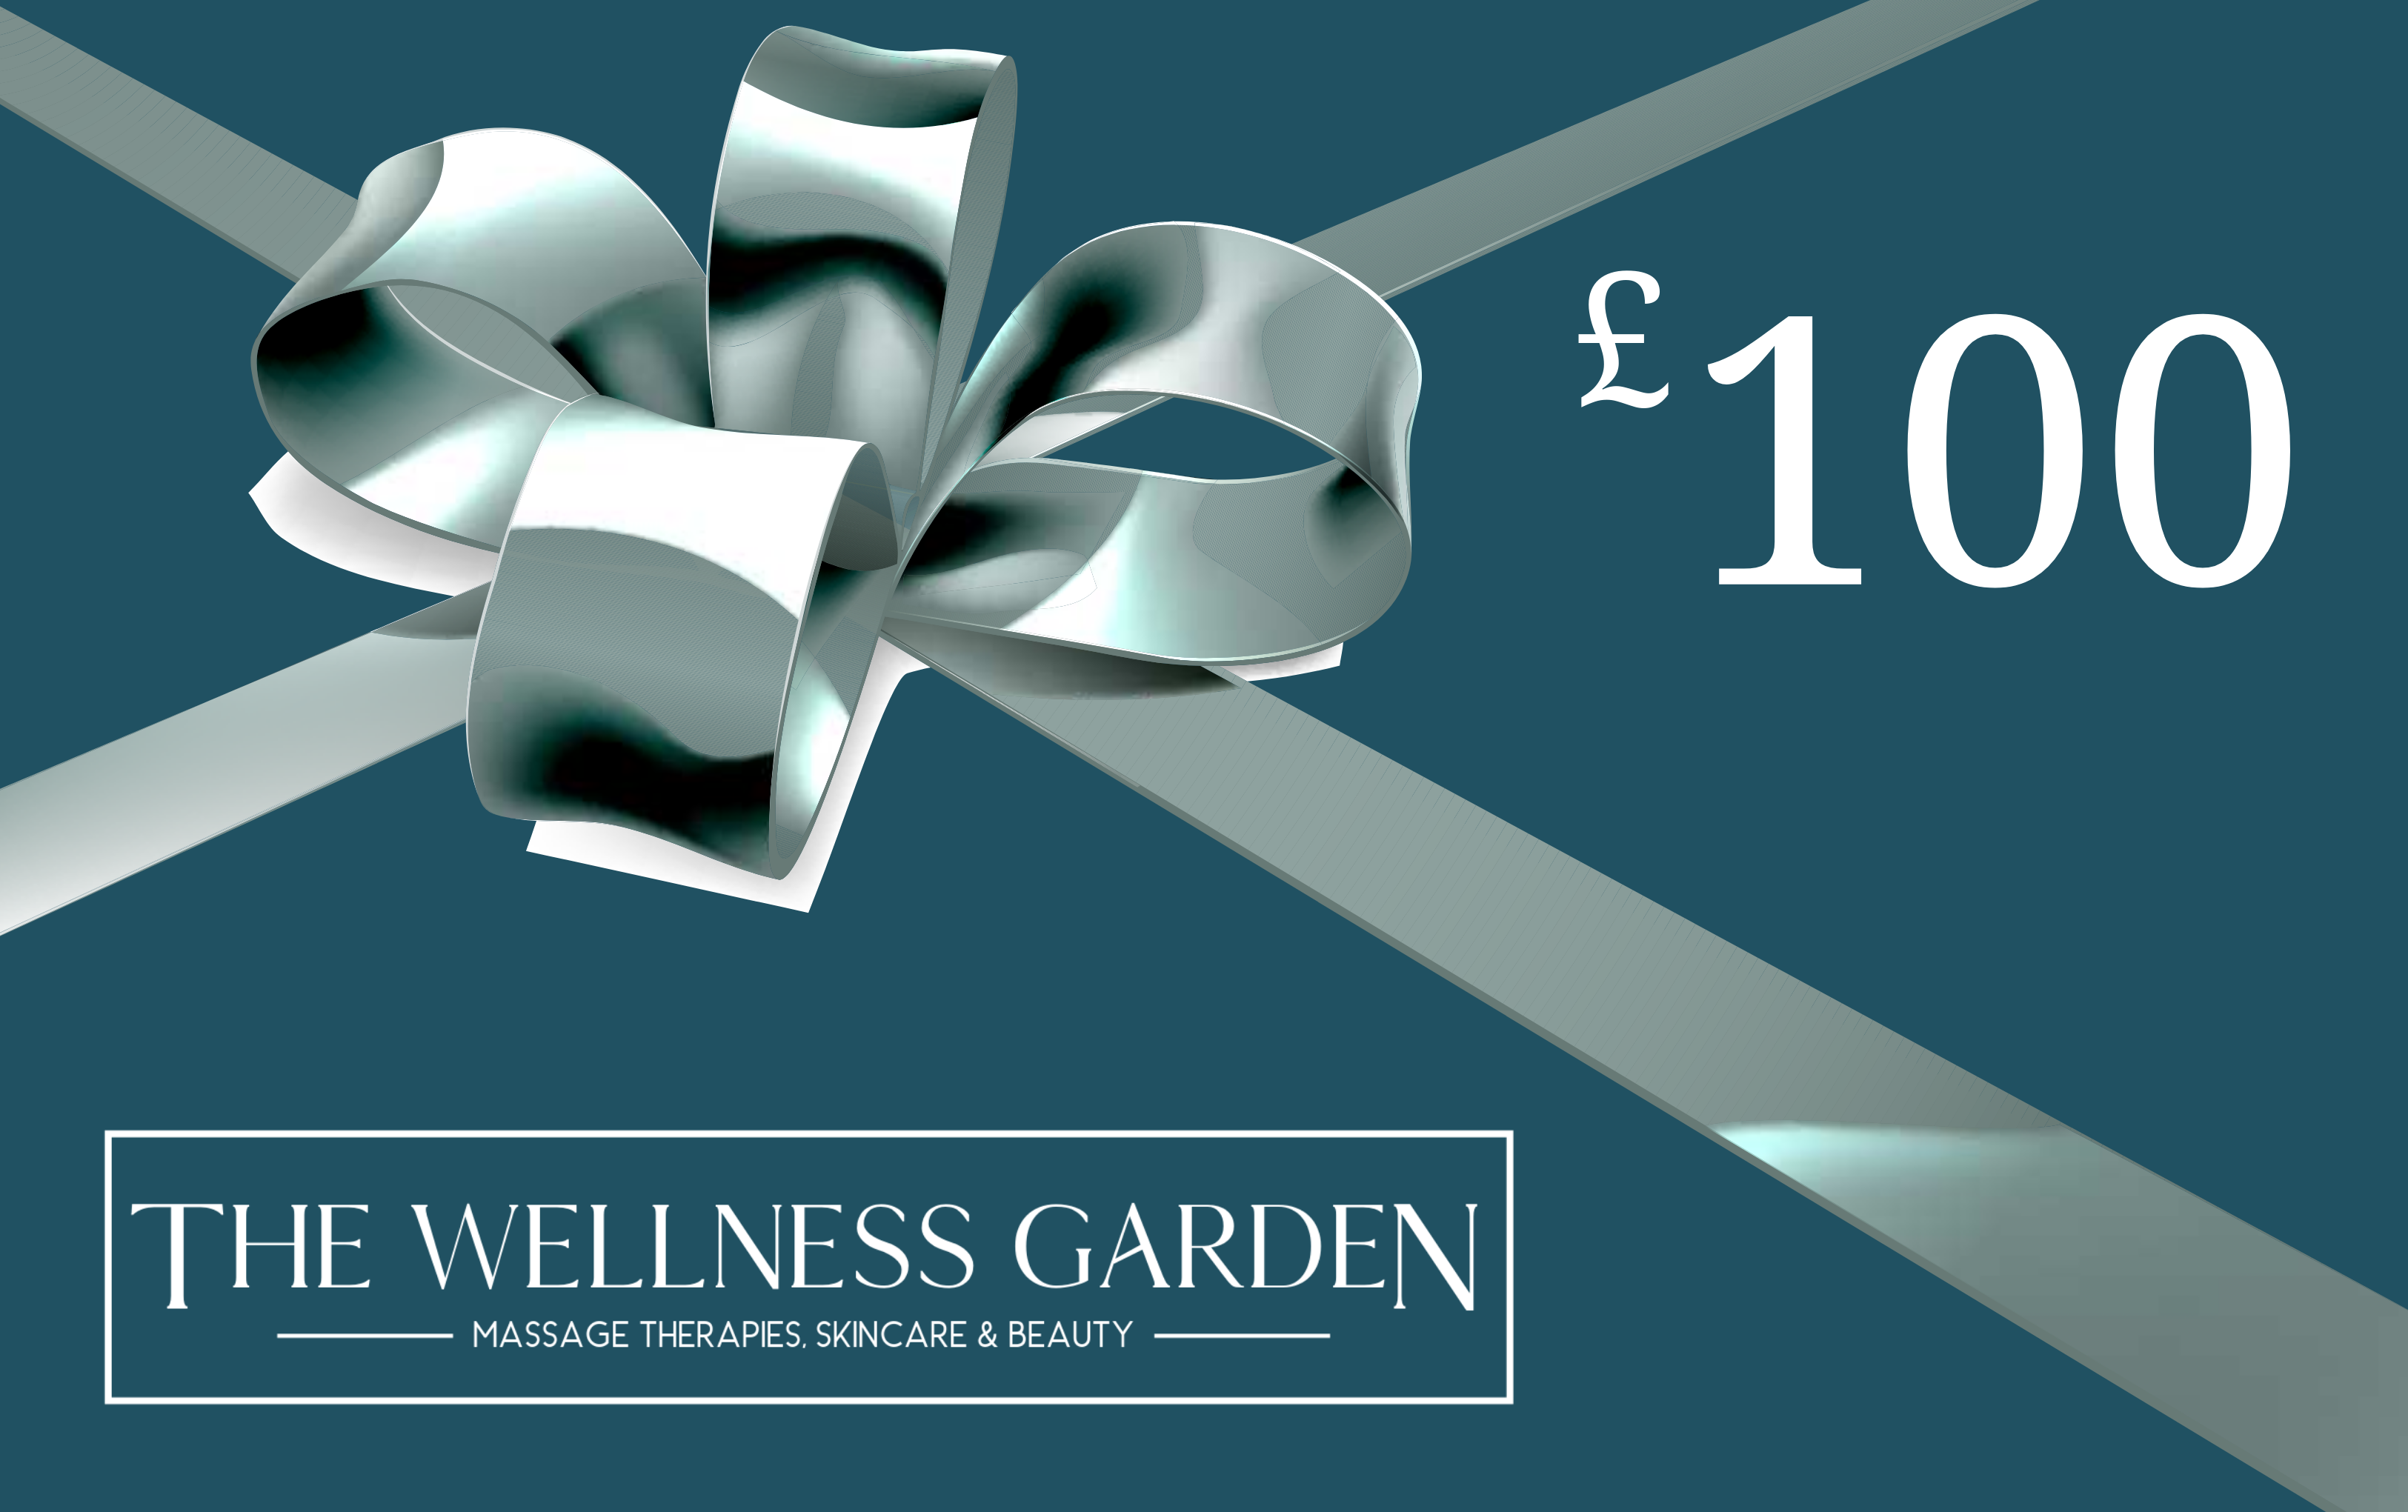 The Wellness Garden £100 gift voucher